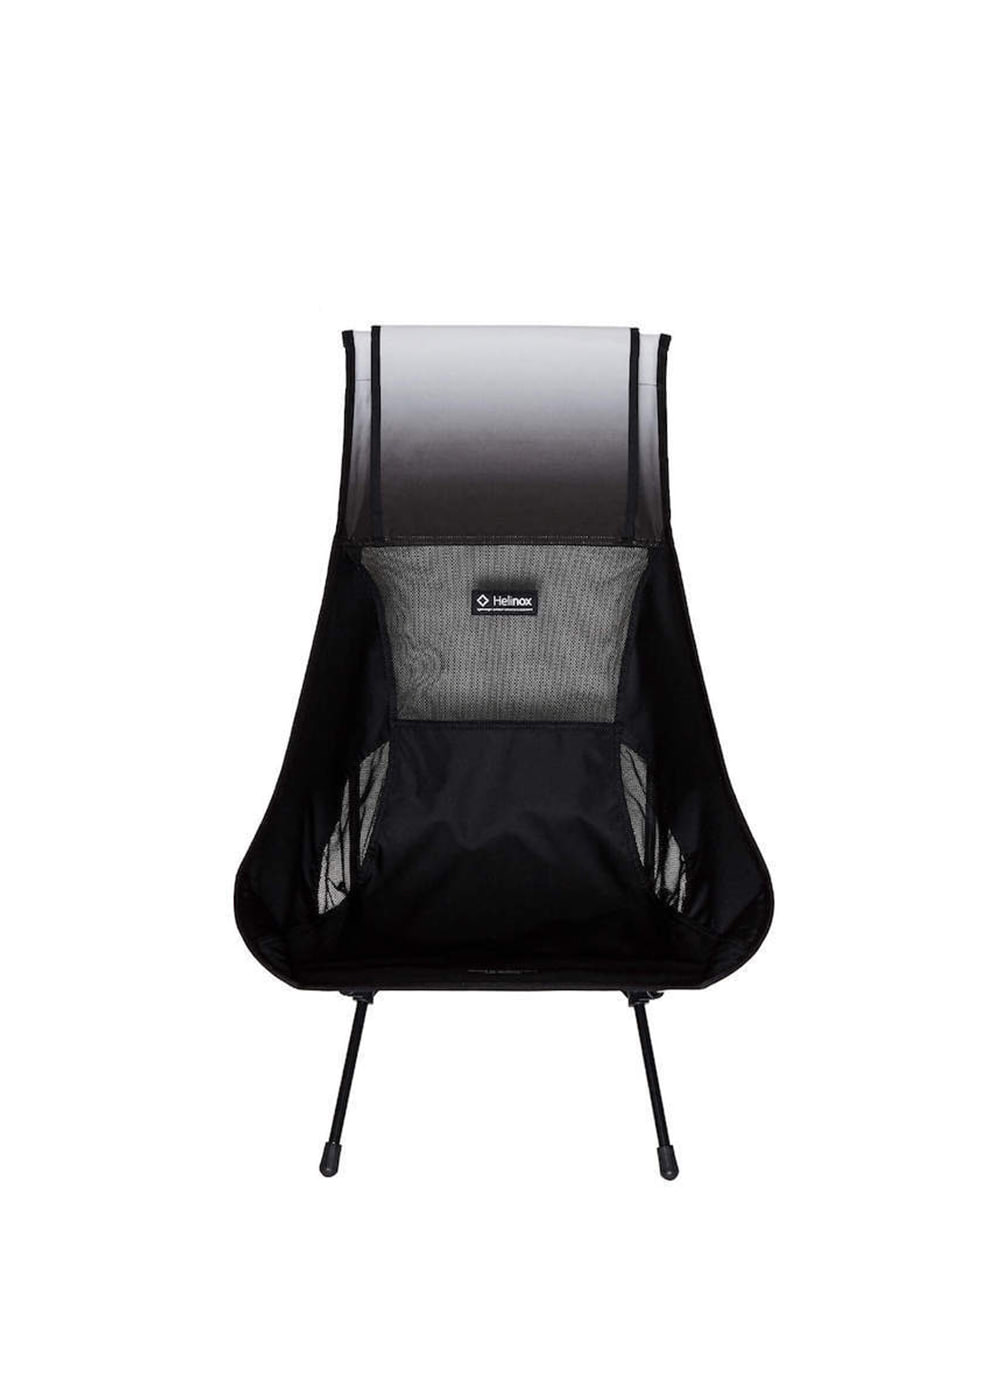 LIFUL x HELINOX CHAIR TWO